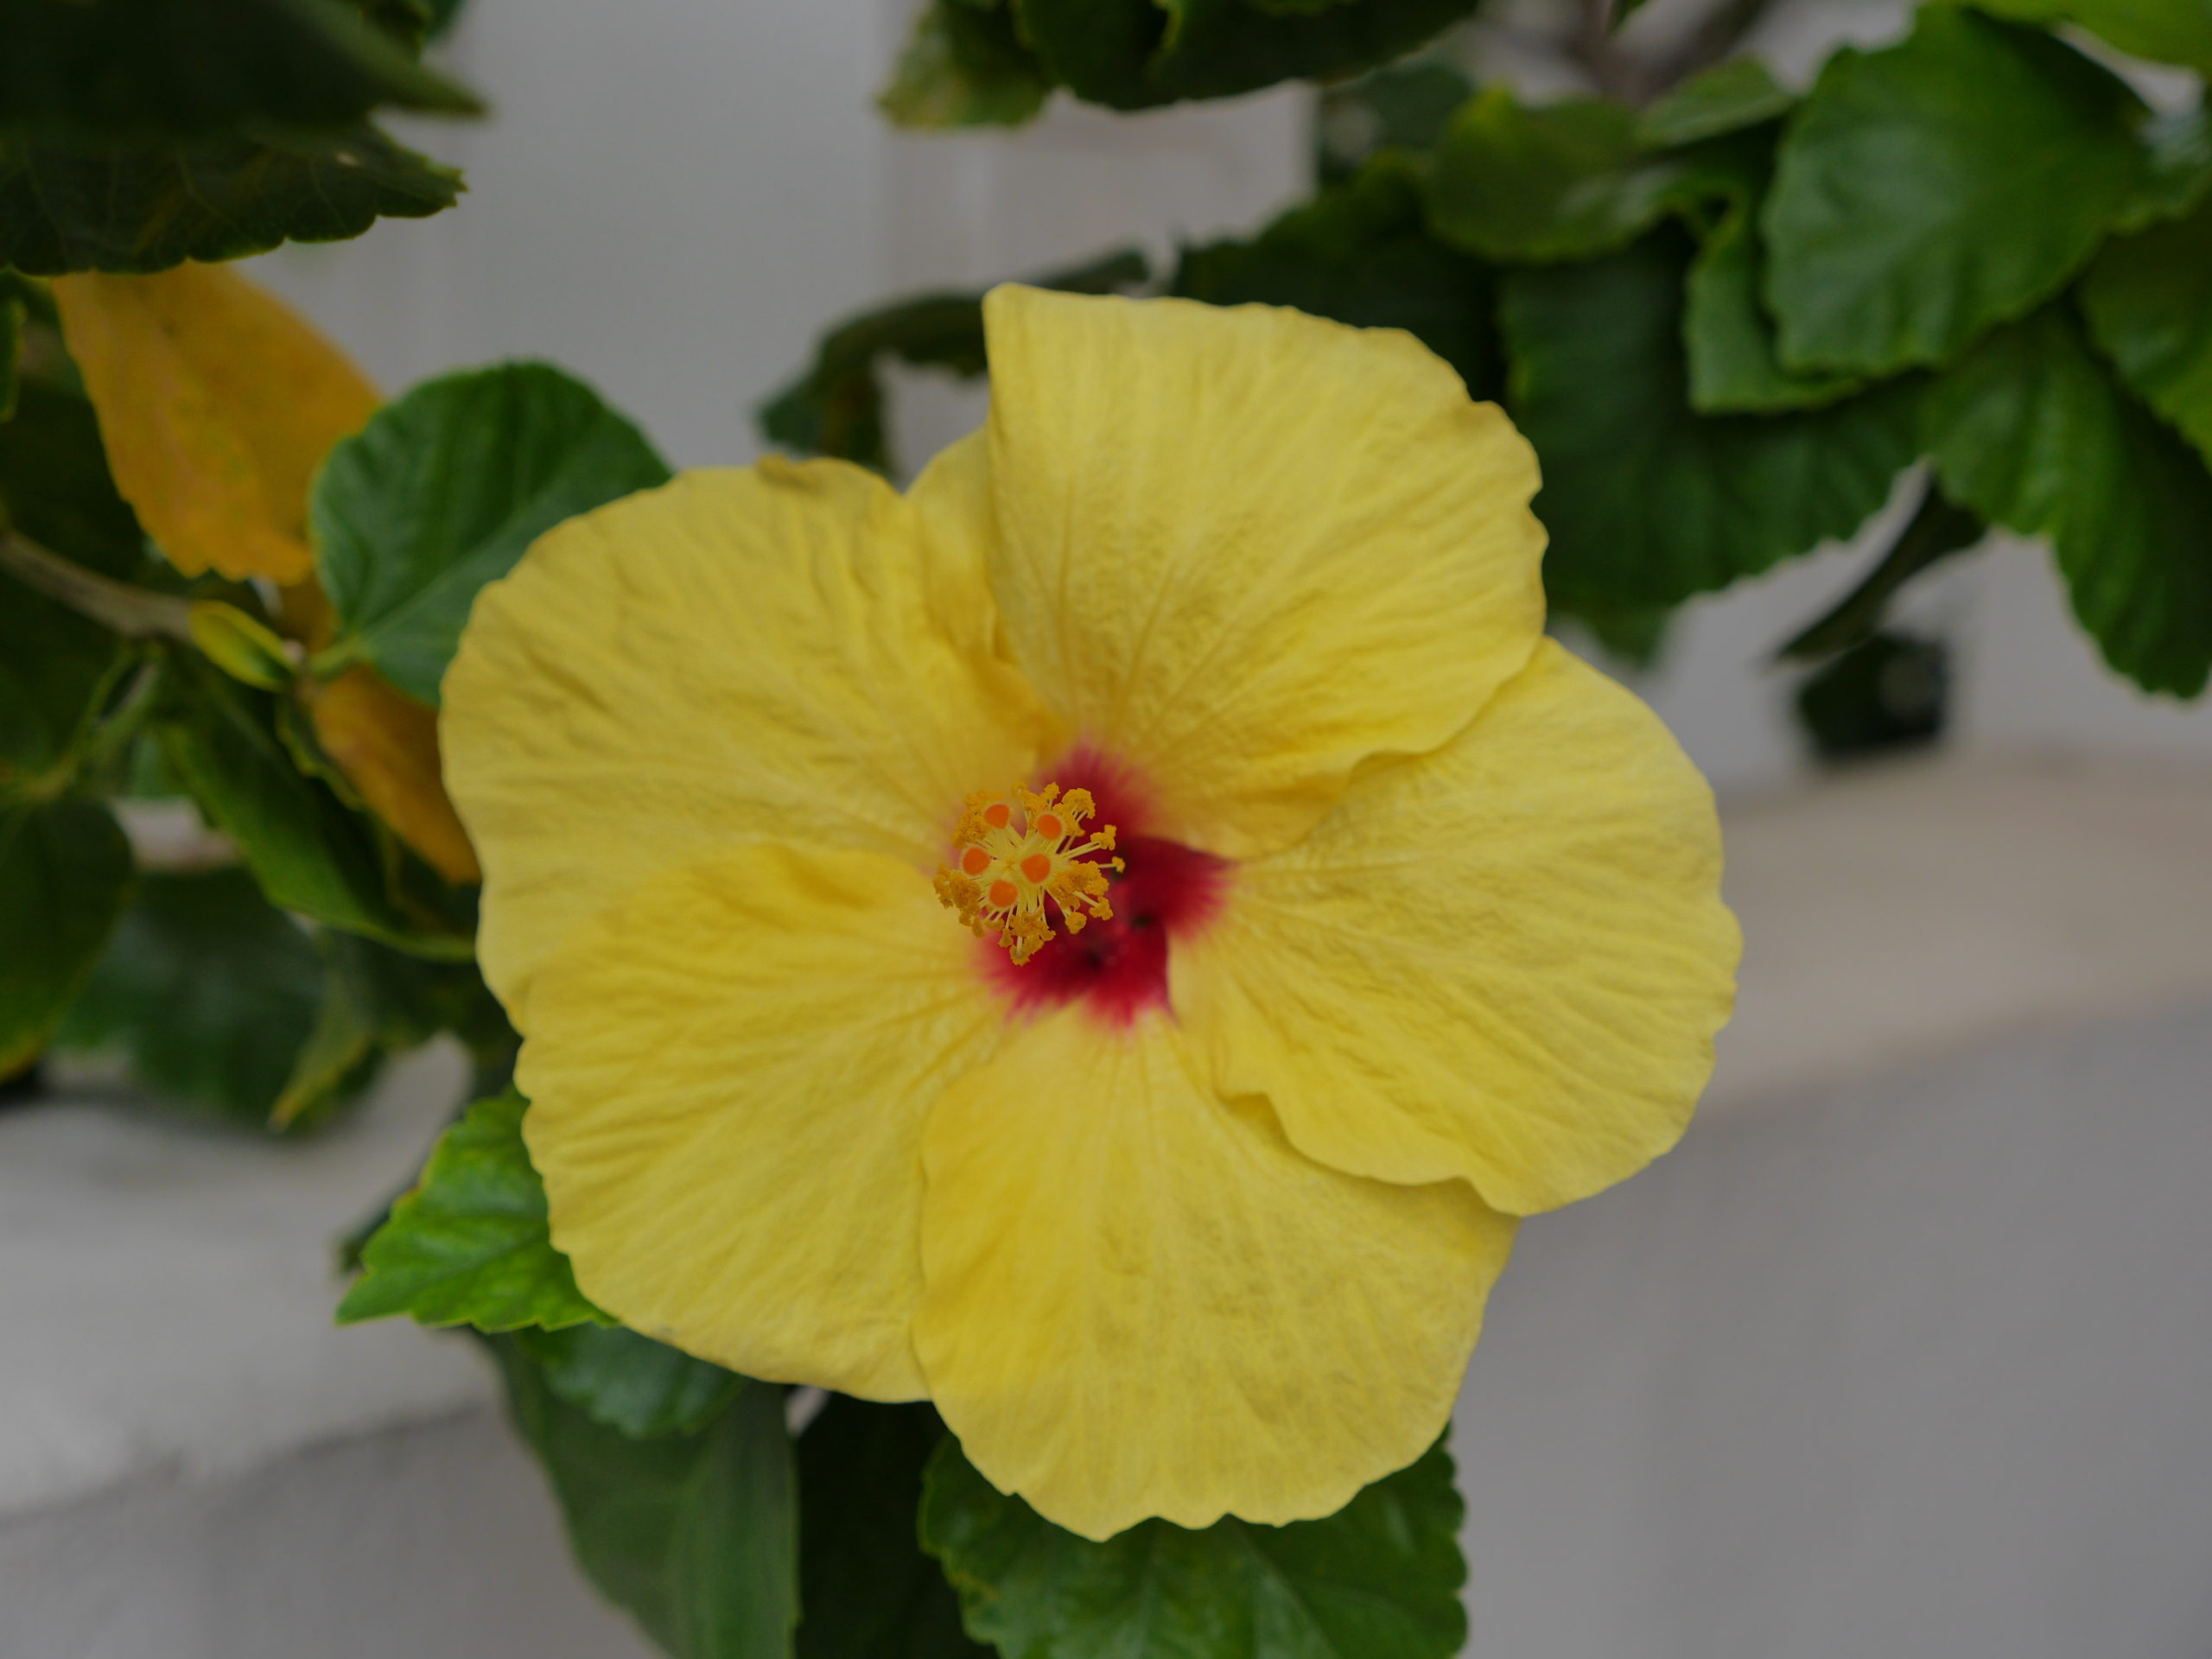 Tropical Hibiscus are hard to pass up when in flower. However, the need plenty of light and warm temperatures and can have a number of insect issues. These, too, can be fast growers, but unlike the Schefflera, the Hibiscus can easily be pruned and managed.